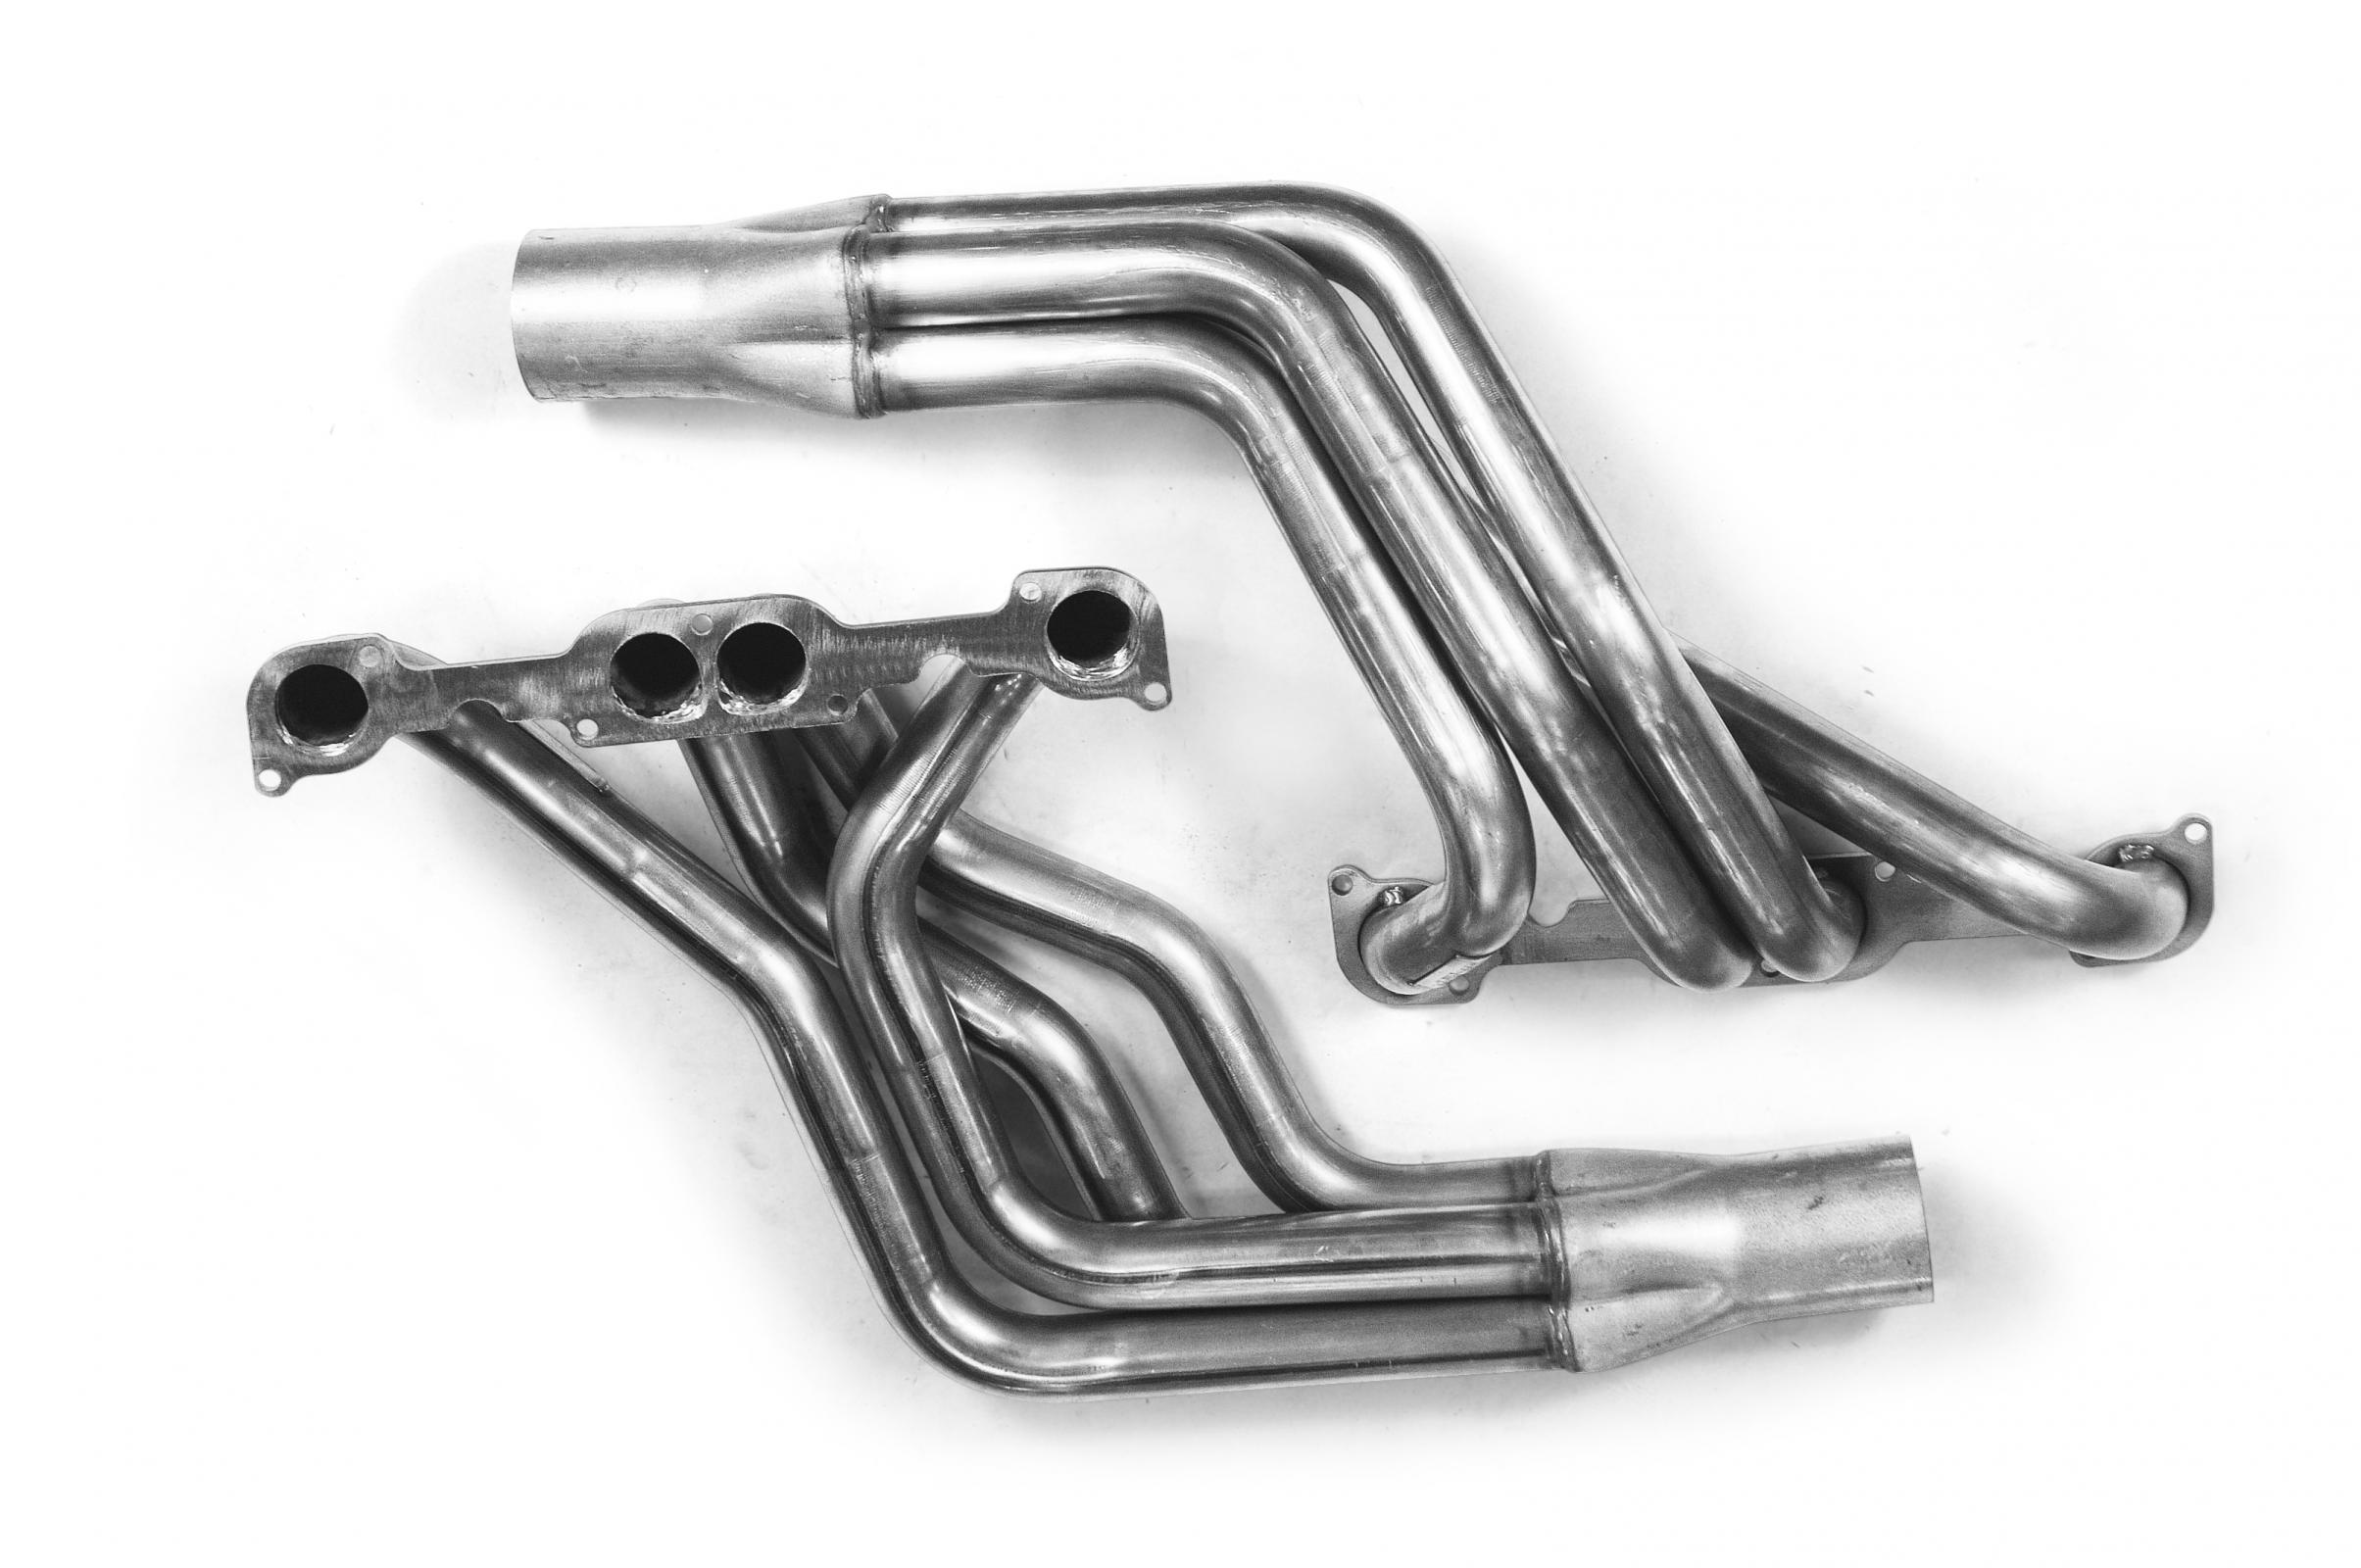 1 7/8 x 3 1/2 Stainless Steel Long Tube Headers w/Adapter Plate Kit  1979-1993 Mustang SBC Engine w/23 Degree Cylinder Heads w/Stock Bolt  Pattern  Fits